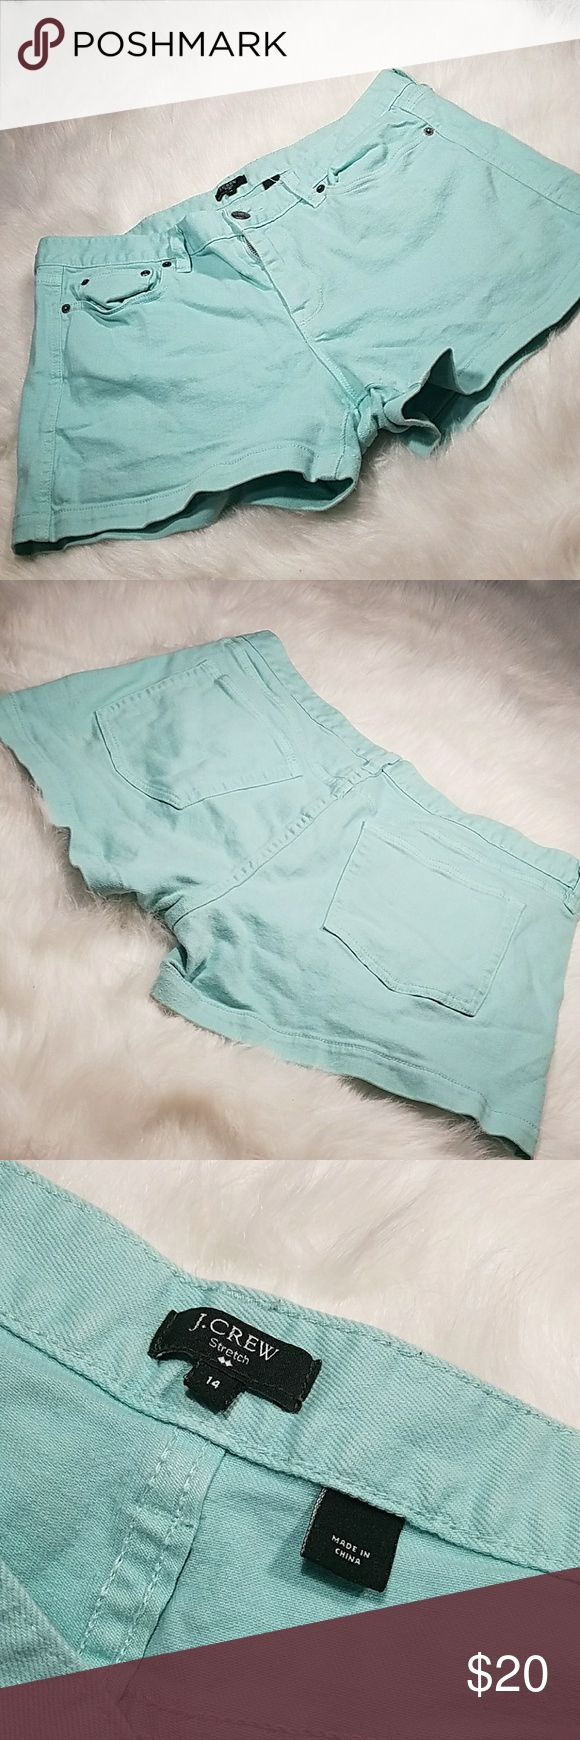 J. Crew mint green  jean shorts J. Crew mint jean shorts Inseam is 3.5 in. J. Crew Shorts Jean Shorts